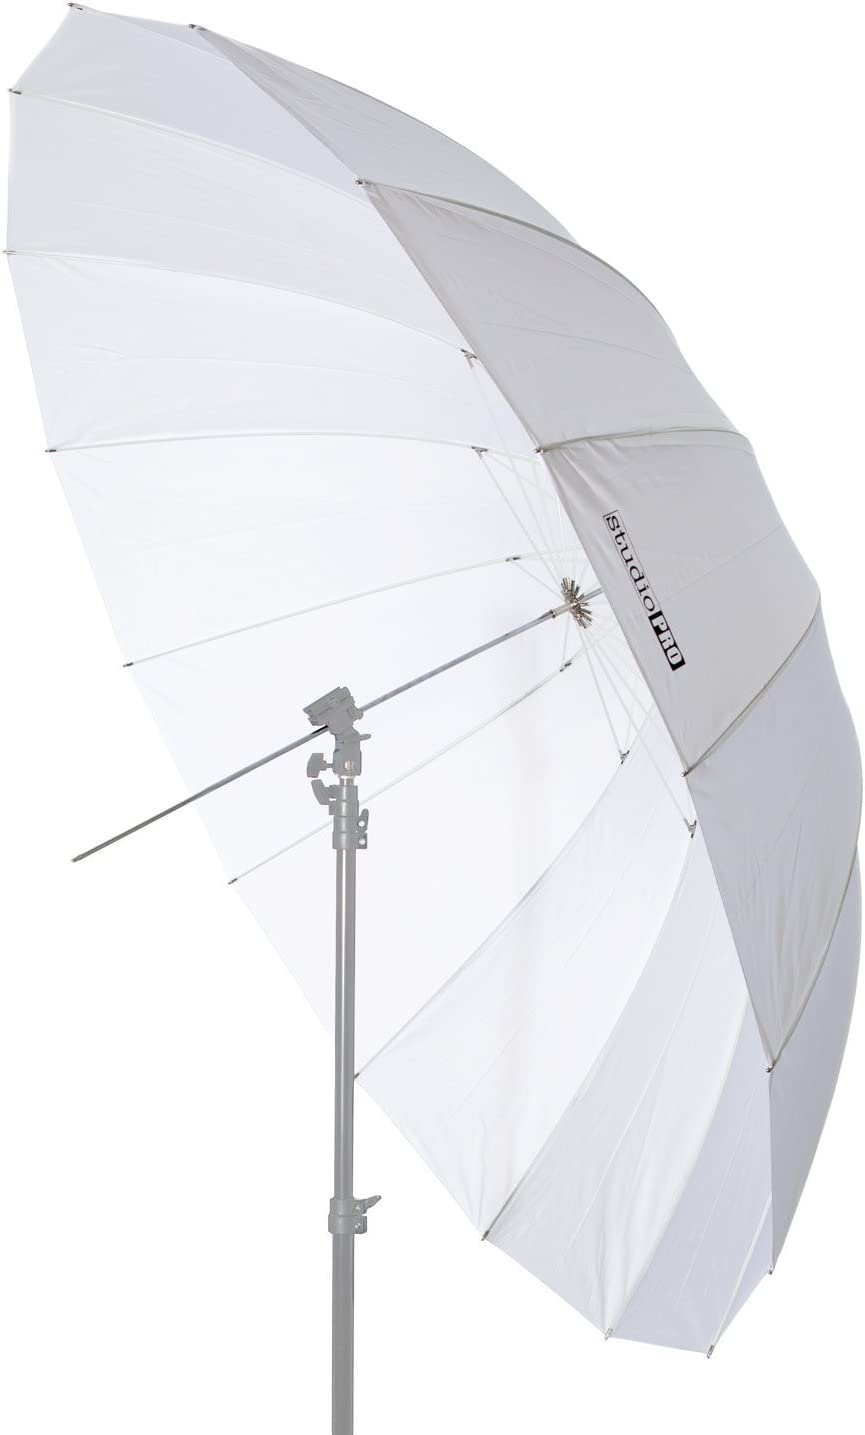 Fovitec StudioPRO Photo Studio Professional White Translucent Parabolic Umbrella with Diffuser - 6 feet